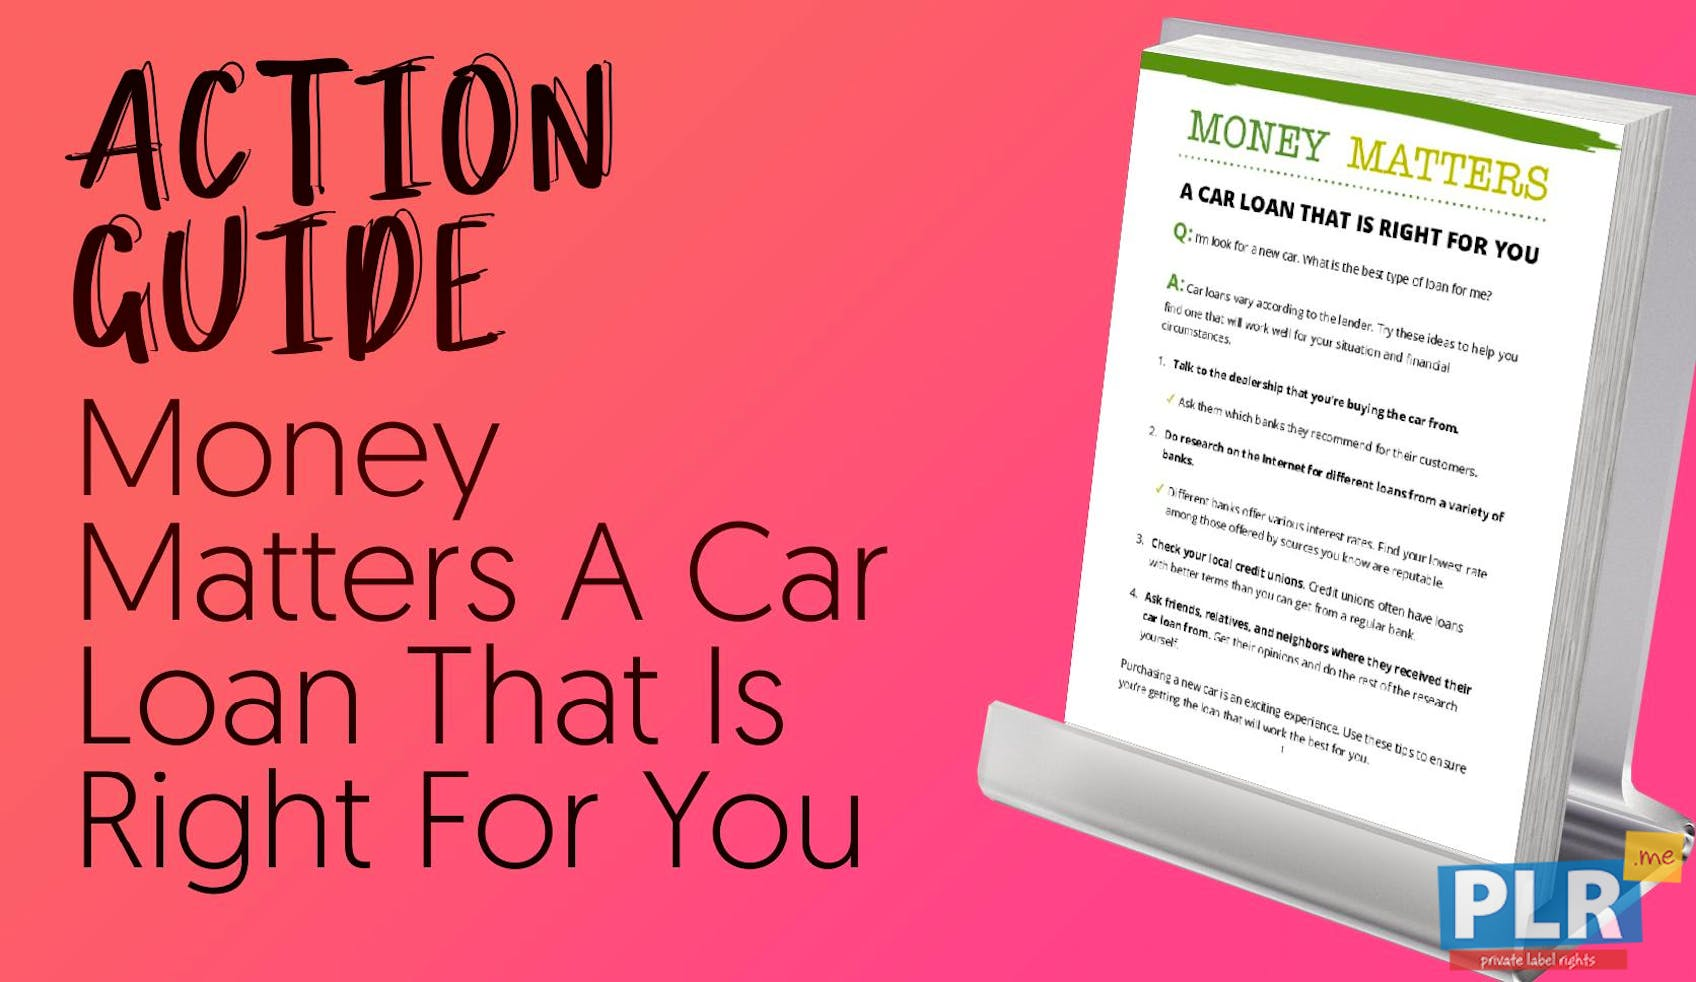 Money Matters A Car Loan That Is Right For You